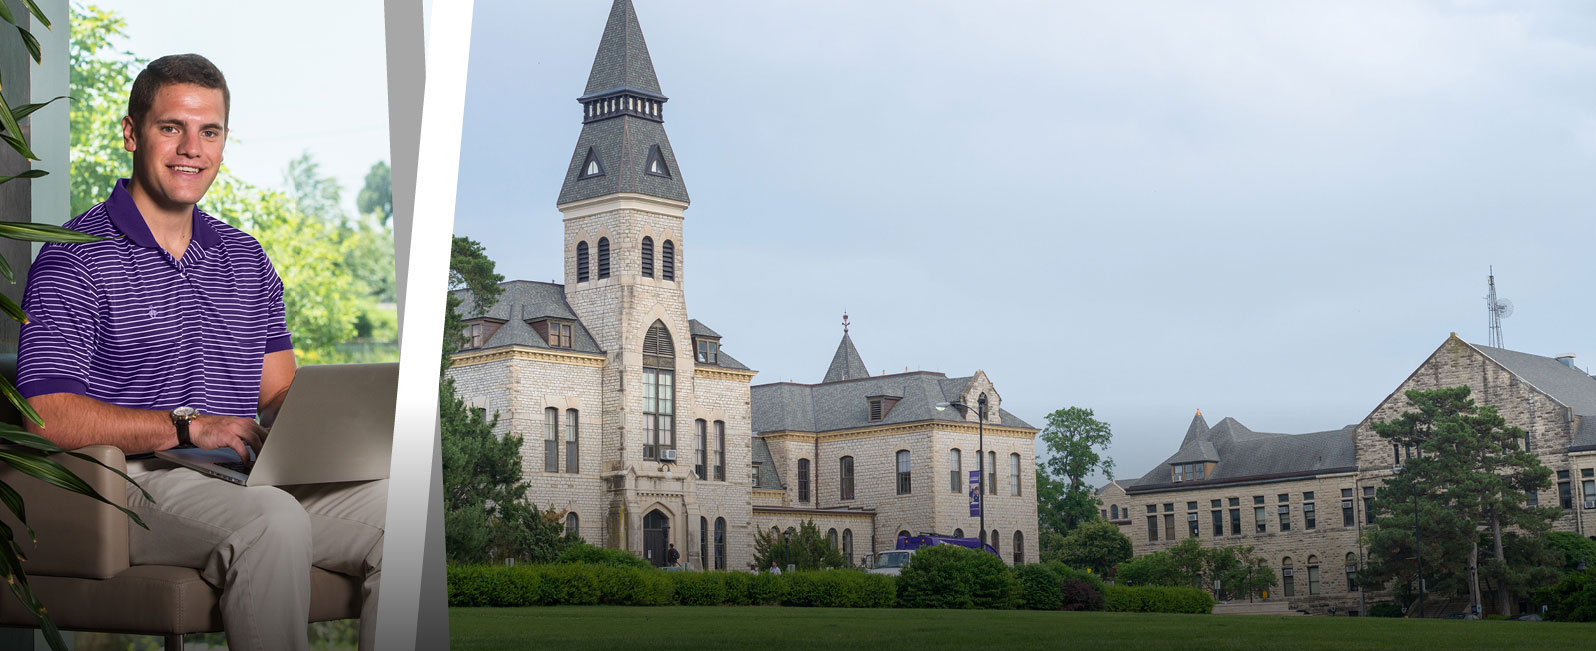 K-State Online offers more than 100 online programs in a wide variety of fields so you can complete your degree whether you live 50 miles from campus, several states away or across the Atlantic.